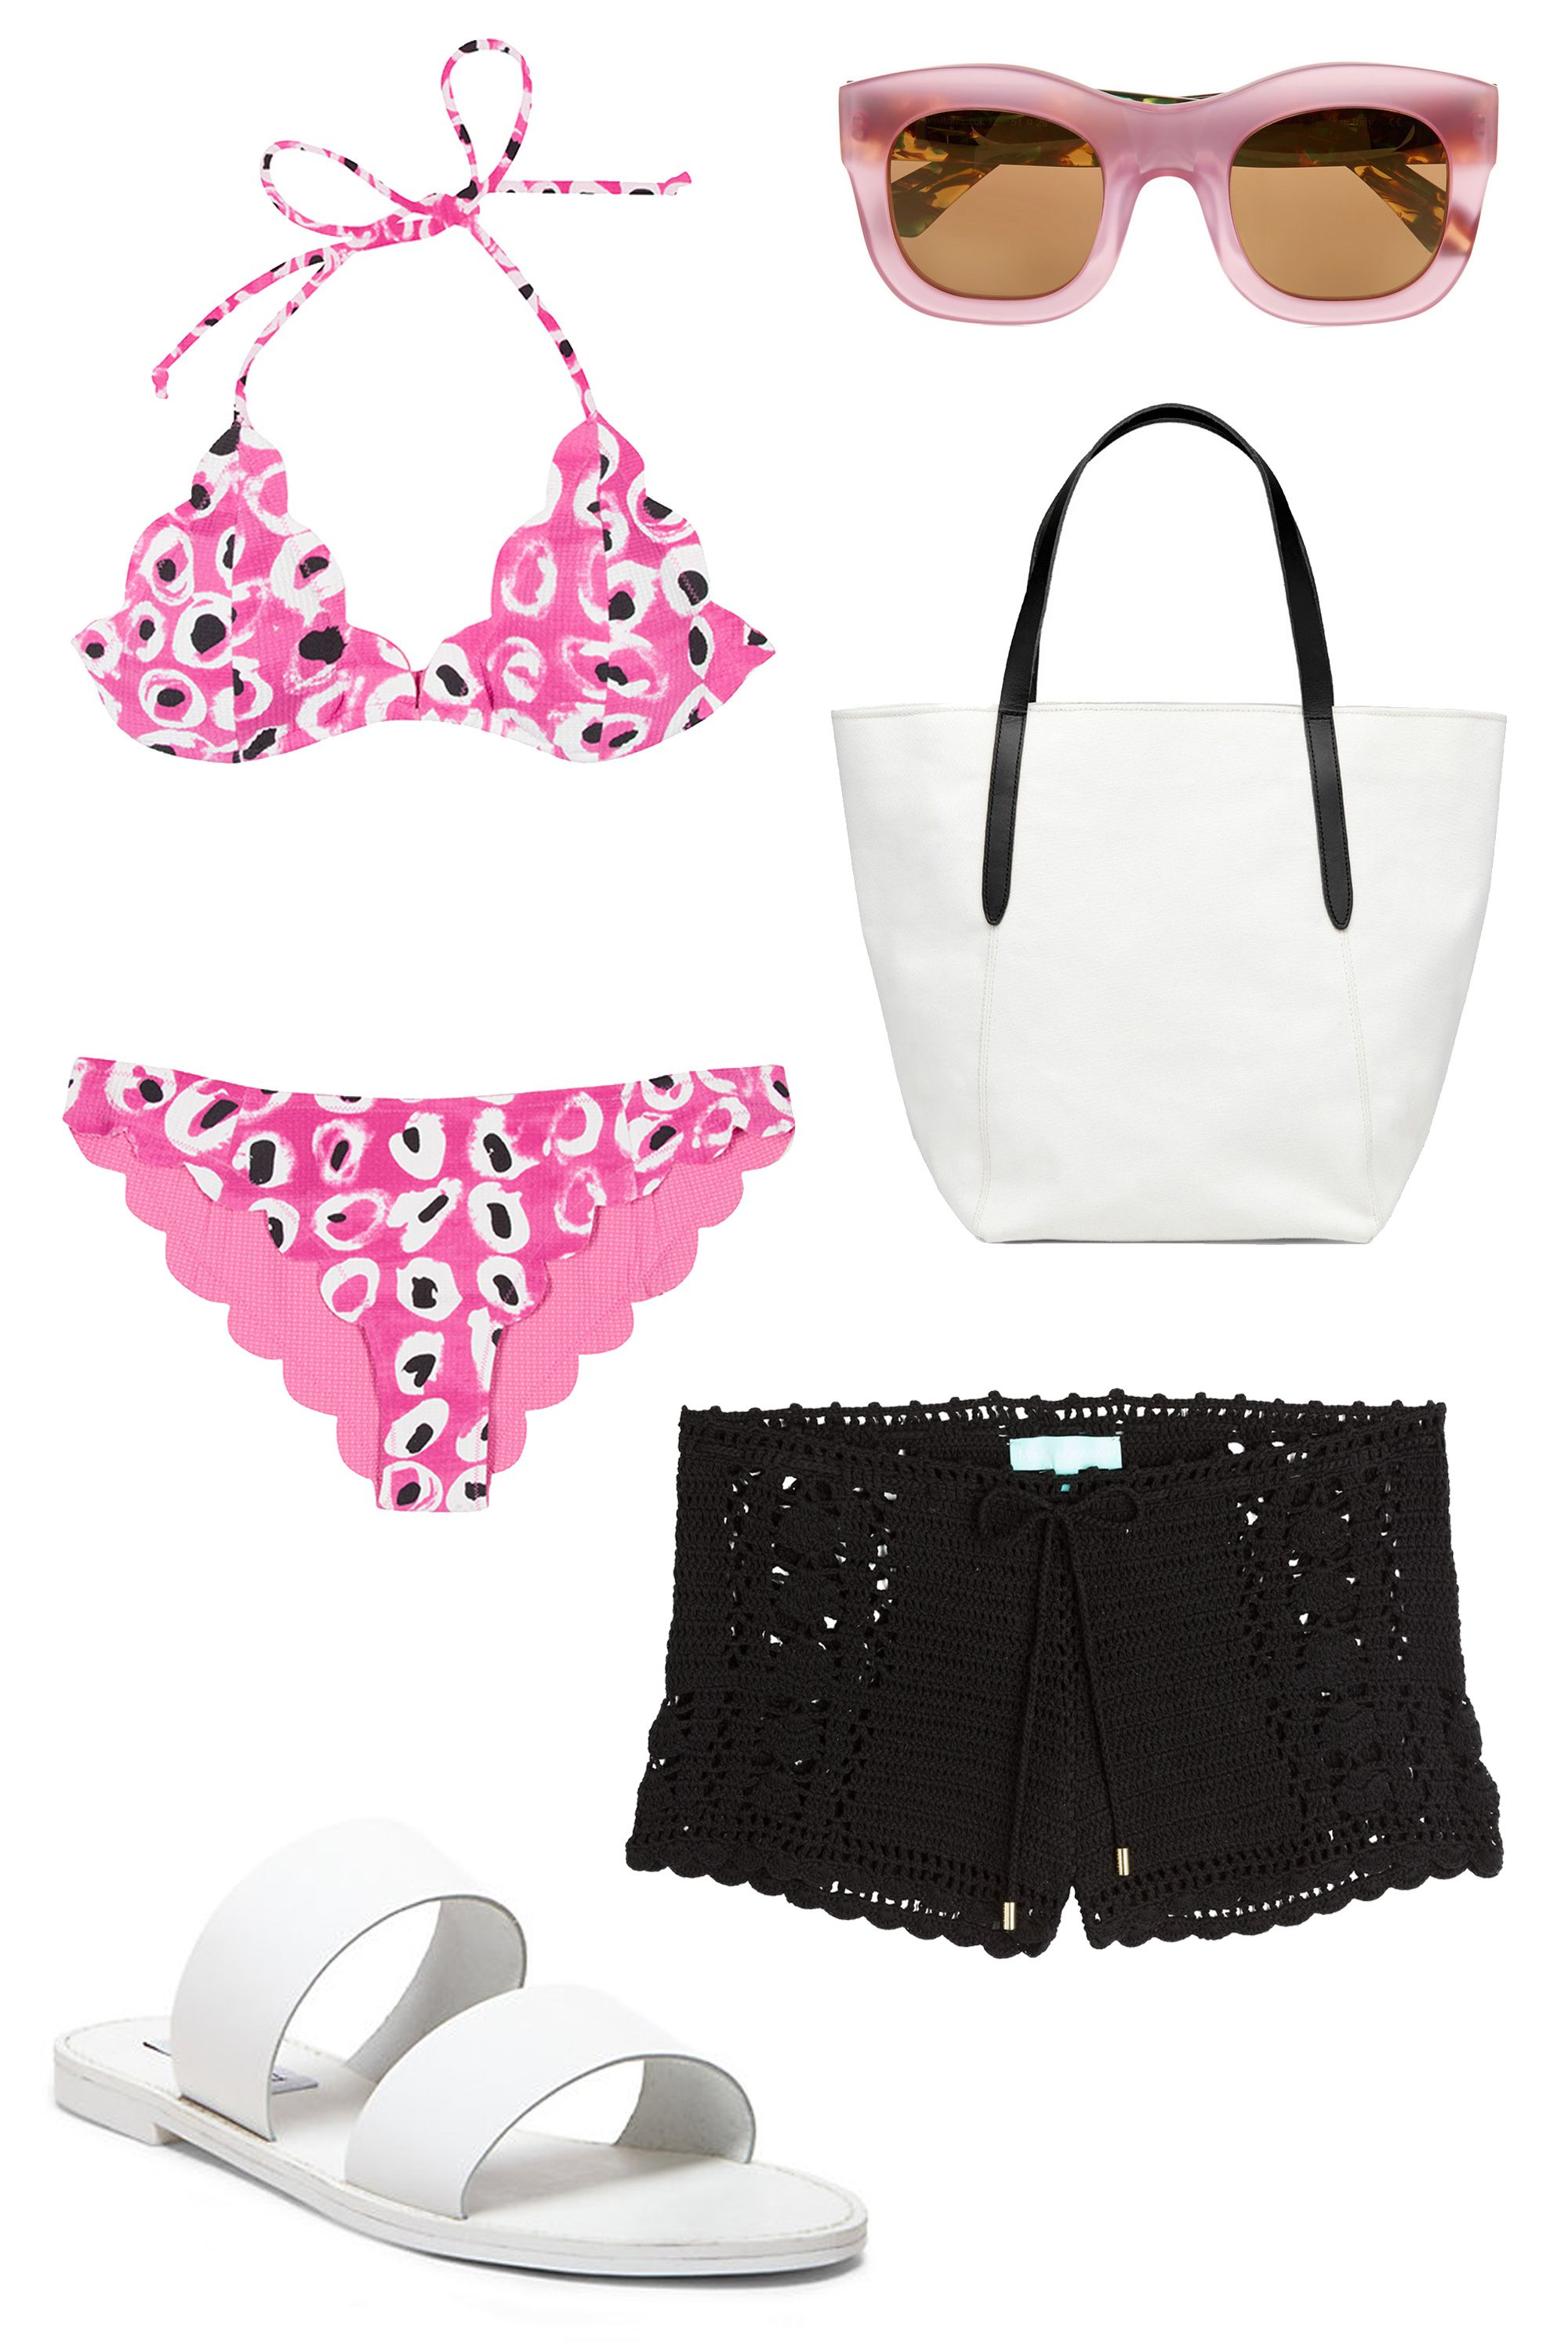 "<p>Going to the beach on a first day can be overwhelming to say the least. Impress him with your confidence—and there is nothing that screams confidence like showing you're comfortable in a bathing suit. Whether you opt for a bikini or a <a href=""http://www.elle.com/fashion/trend-reports/news/g7862/one-piece-bathingsuits/"">chic one-piece</a>, go for something colorful and with a print that shows off your fun side. </p><p>Marysia Swim Broadway Bikini, $272; <a href=""http://marysiaswim.com/product/broadway-2/"">marysiaswim.com</a></p><p>Illesteva Hamilton D-Frame Acetate Mirrored Sunglasses, $290; <a href=""http://rstyle.me/n/x3sjfbc6jf"">net-a-porter.com</a></p><p>Cuyana Canvas Beach Tote, $110; <a href=""http://www.cuyana.com/canvas-beach-tote-black.html"">cuyana.com</a></p><p>Melissa Odabash Macrame Shorts, $200; <a href=""http://rstyle.me/n/74etcbc6jf"">stylebop.com</a></p><p>Steve Madden Malta Sandals, $70; <a href=""http://rstyle.me/n/74et5bc6jf"">stevemadden.com</a></p>"